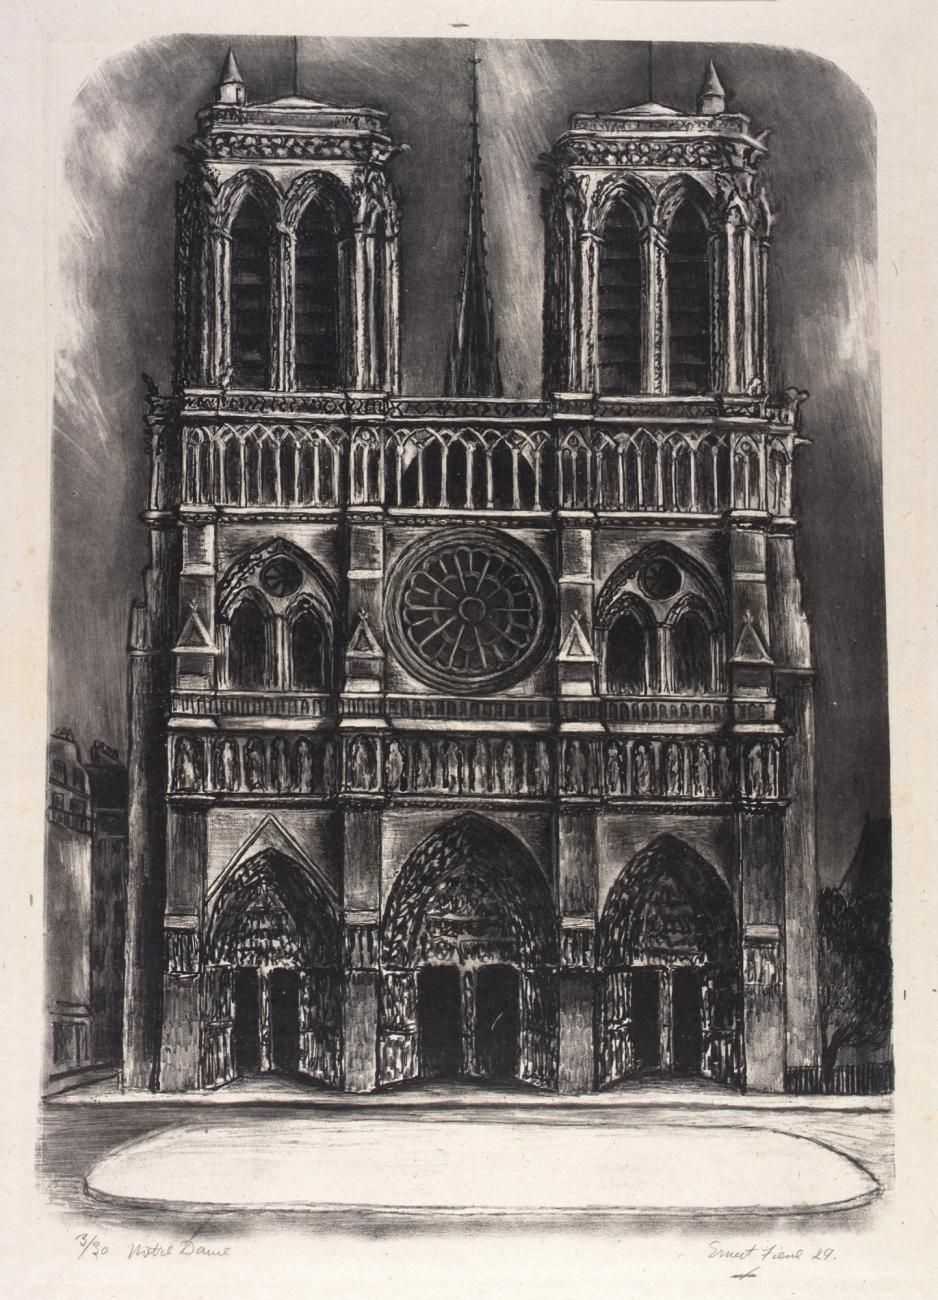 A lithograph of the front facade of Notre Dame.